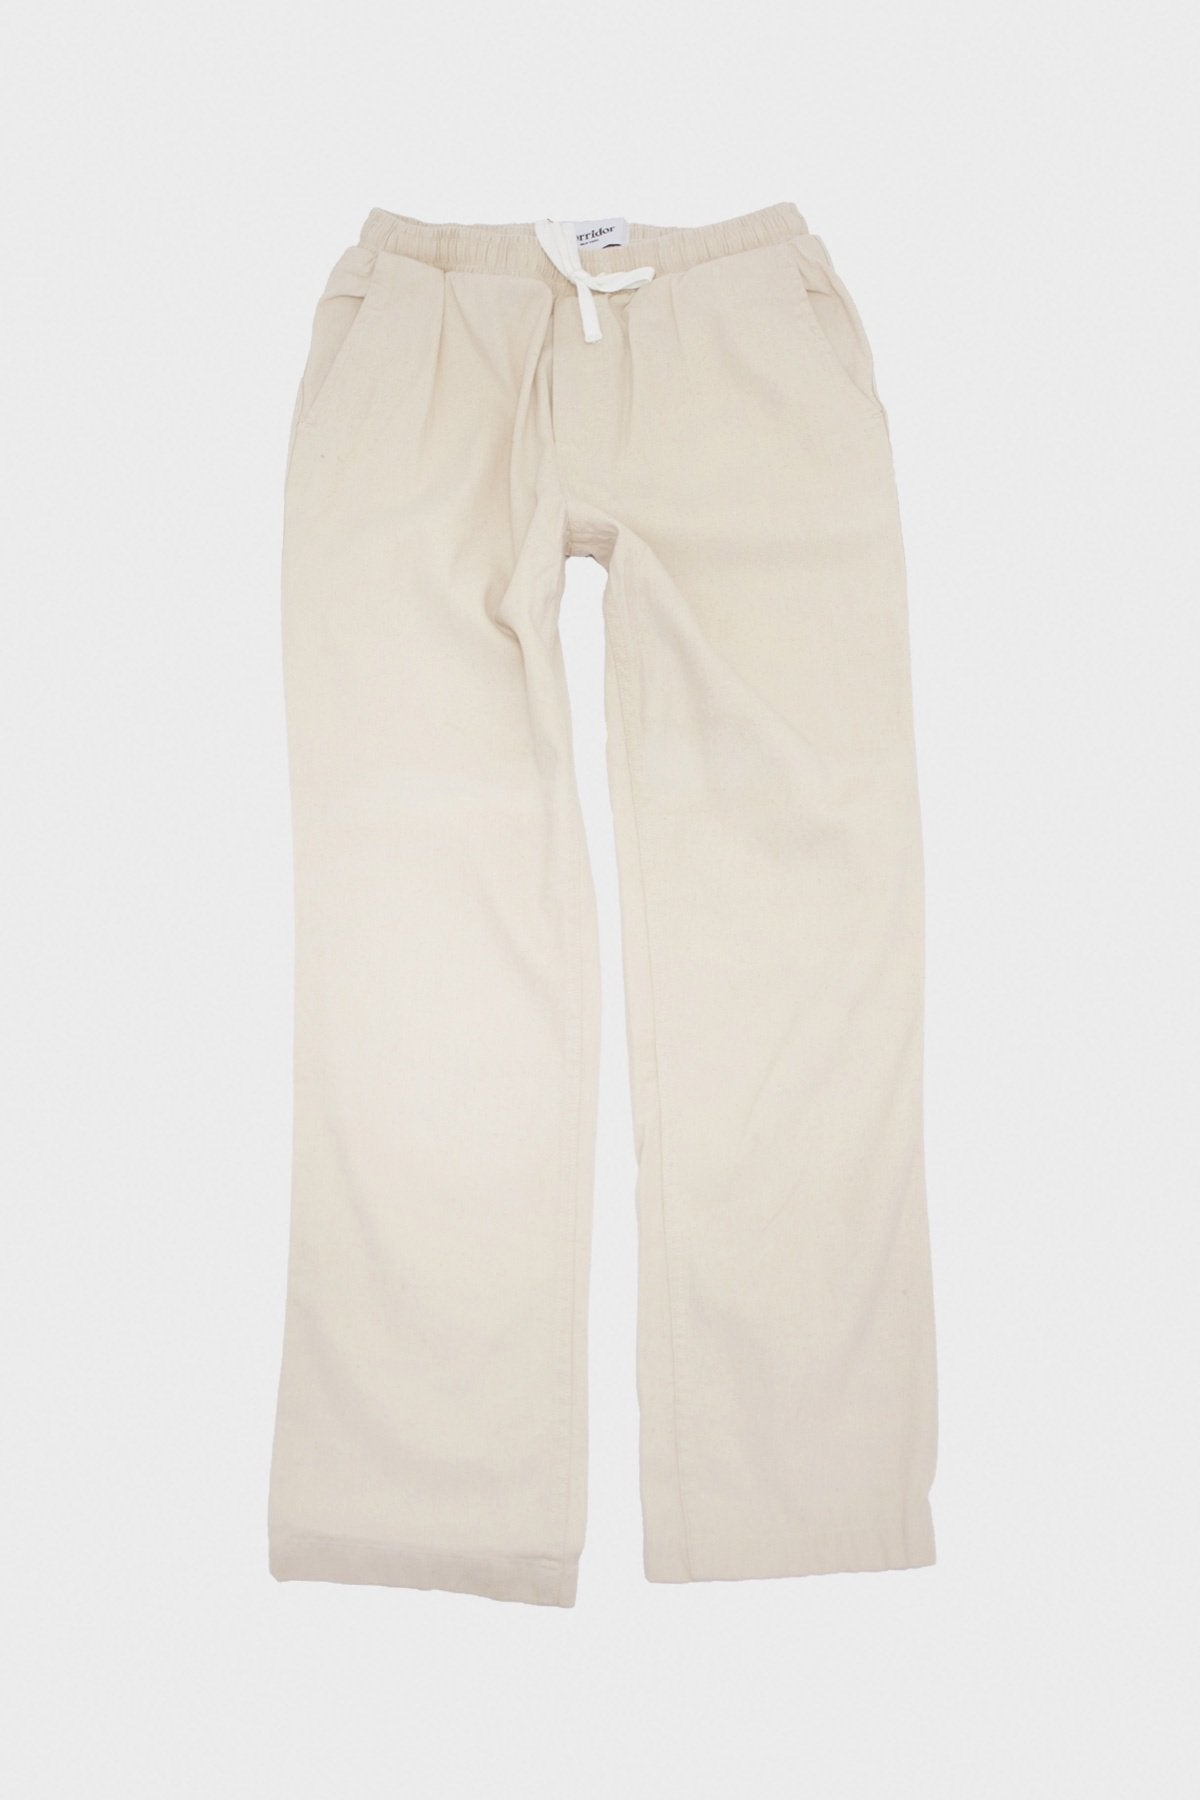 Corridor - Cotton Seed Drawstring Pants - Garment Dye - Canoe Club